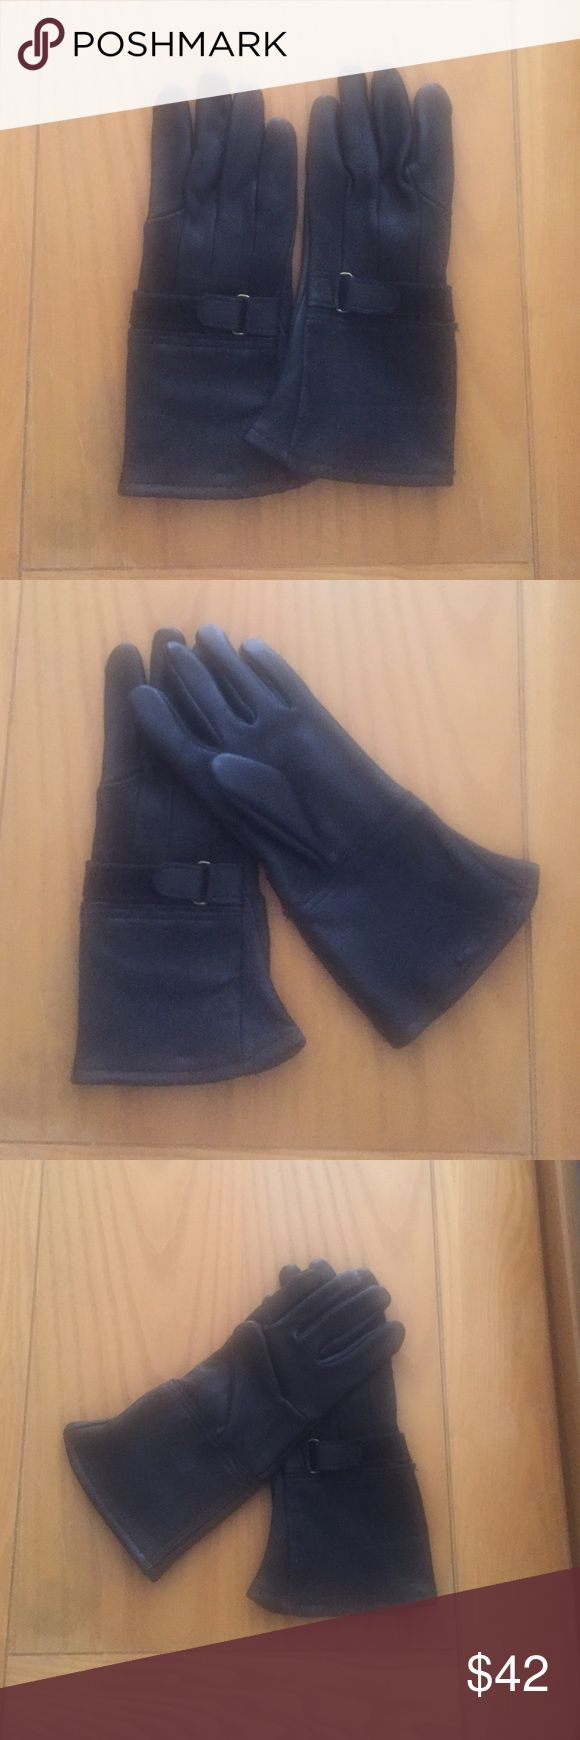 Motorcycle riding gloves New without tags American leather women's riding gloves size XS. They fit past wrist and have and gold leather and Velcro adjusting strap at the wrist. Will keep the female motorcycle riding enthusiast warm!!! American leather Accessories Gloves & Mittens